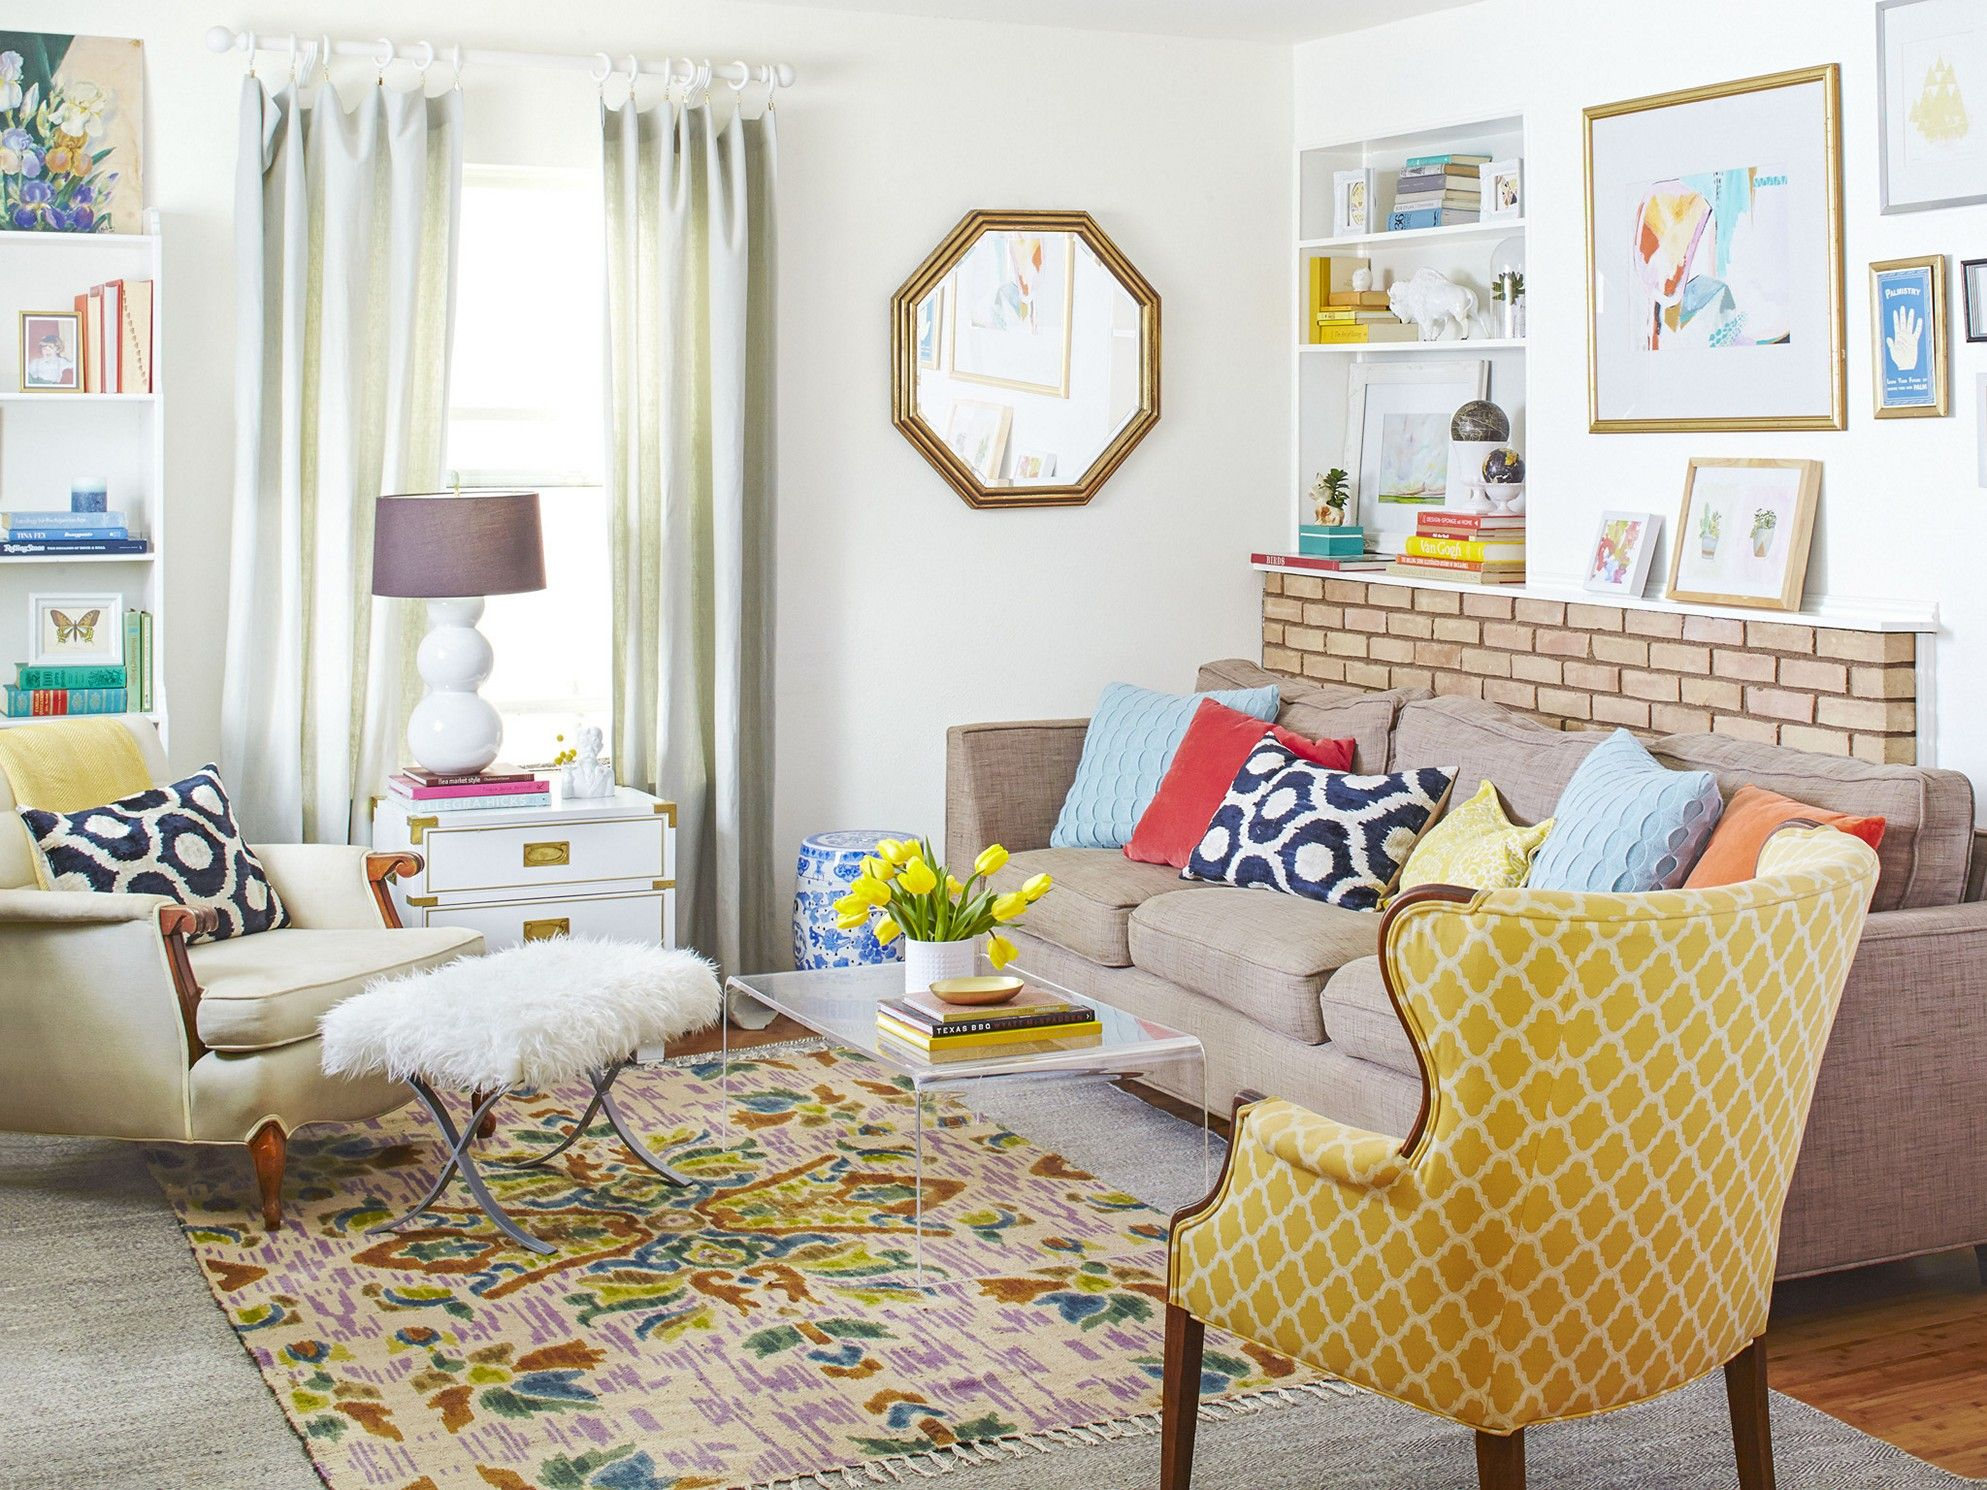 Eclectic living room eclectic living room decor jpg